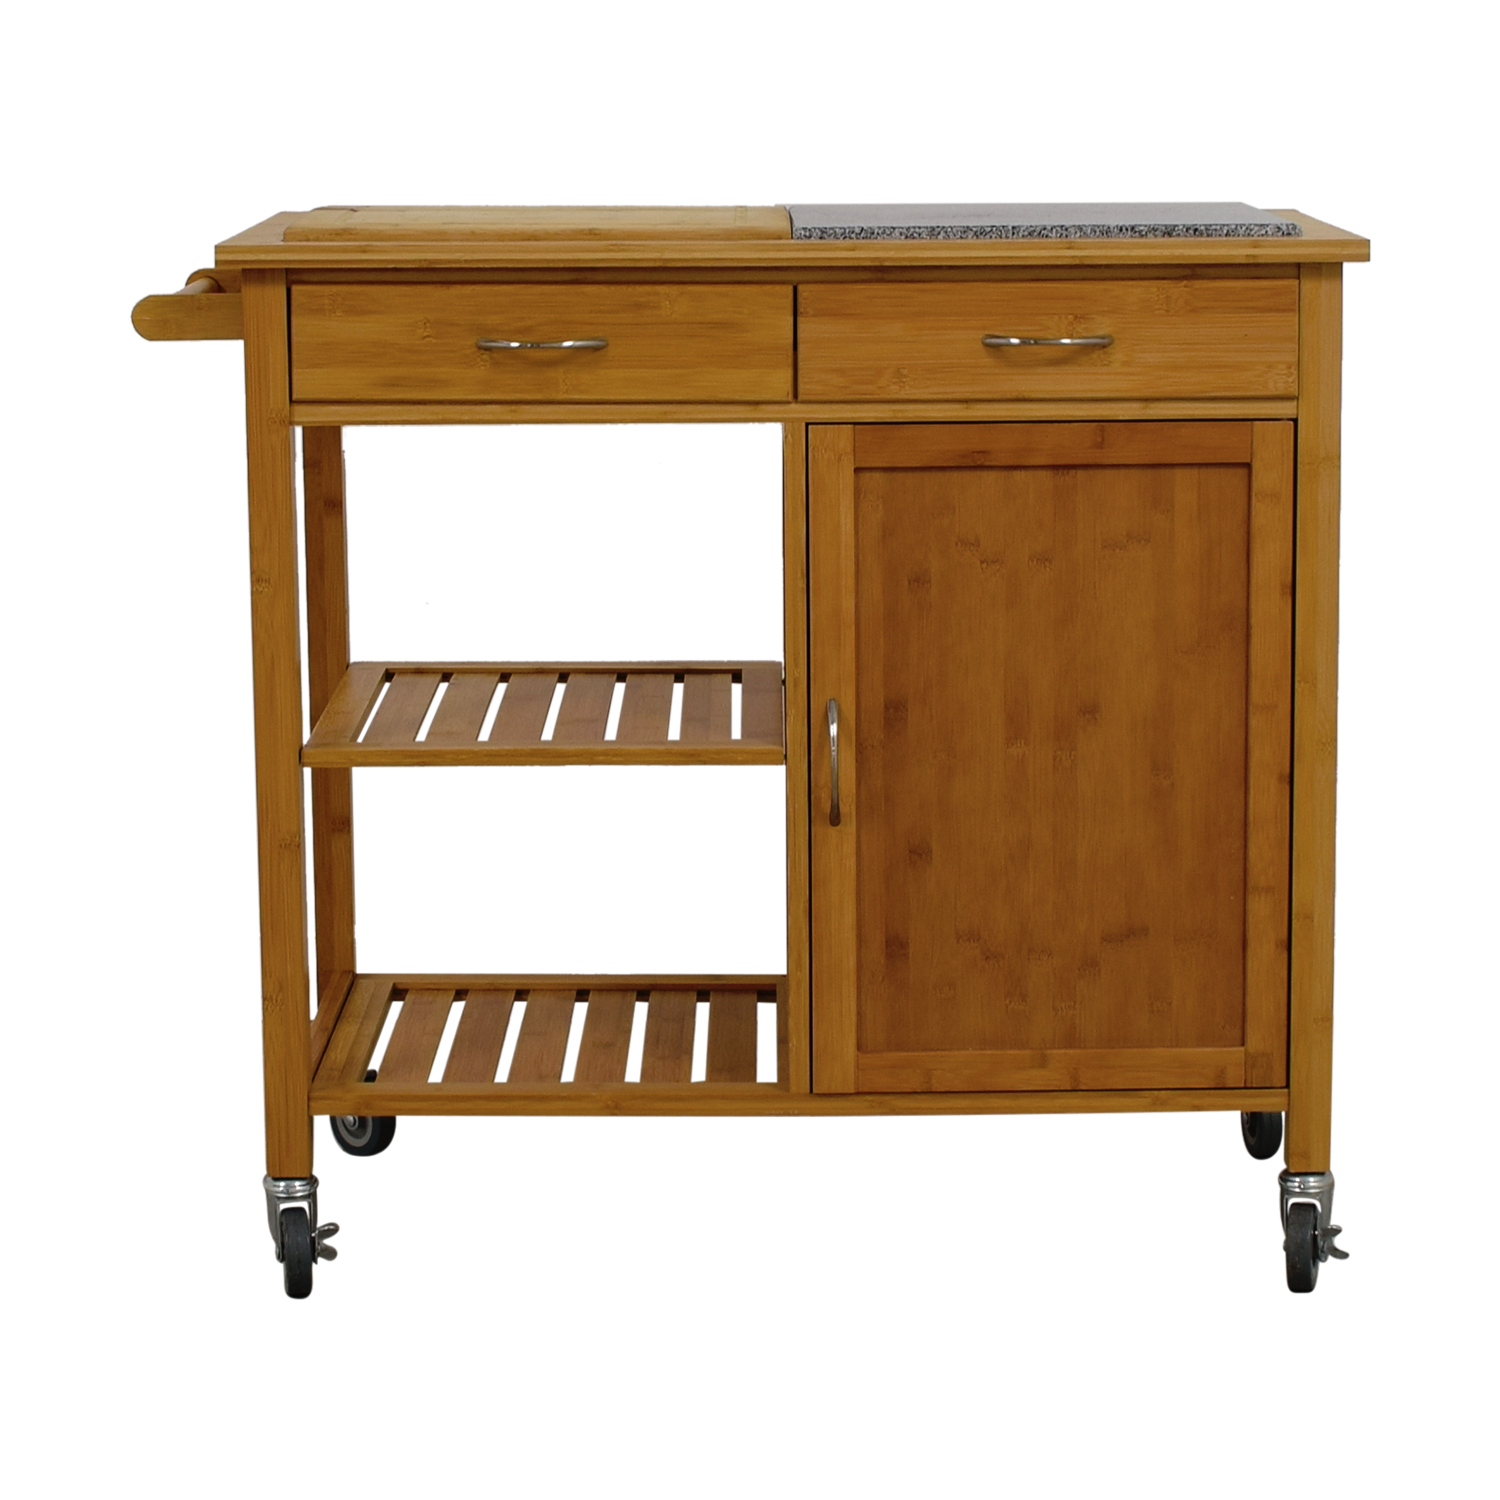 48% OFF - Linon Home Decor Linon Home Bamboo Rolling Kitchen Island / Tables